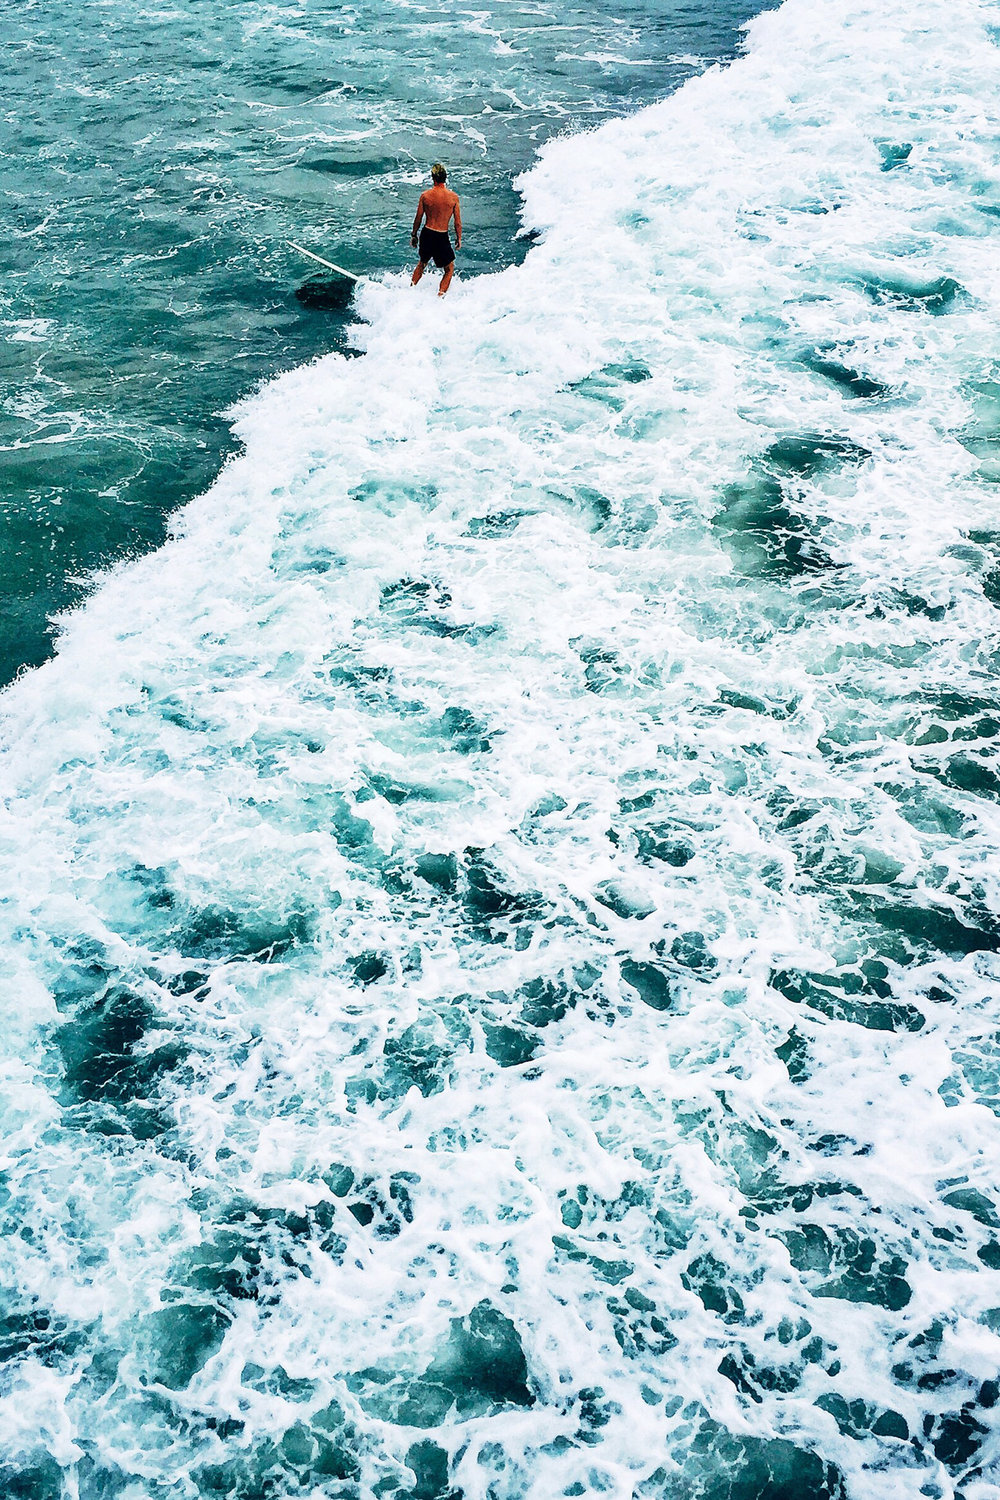 Ocean Waves / Nature Photography / Surfer / Tropical Summer Sea / Kelly Fiance Creative